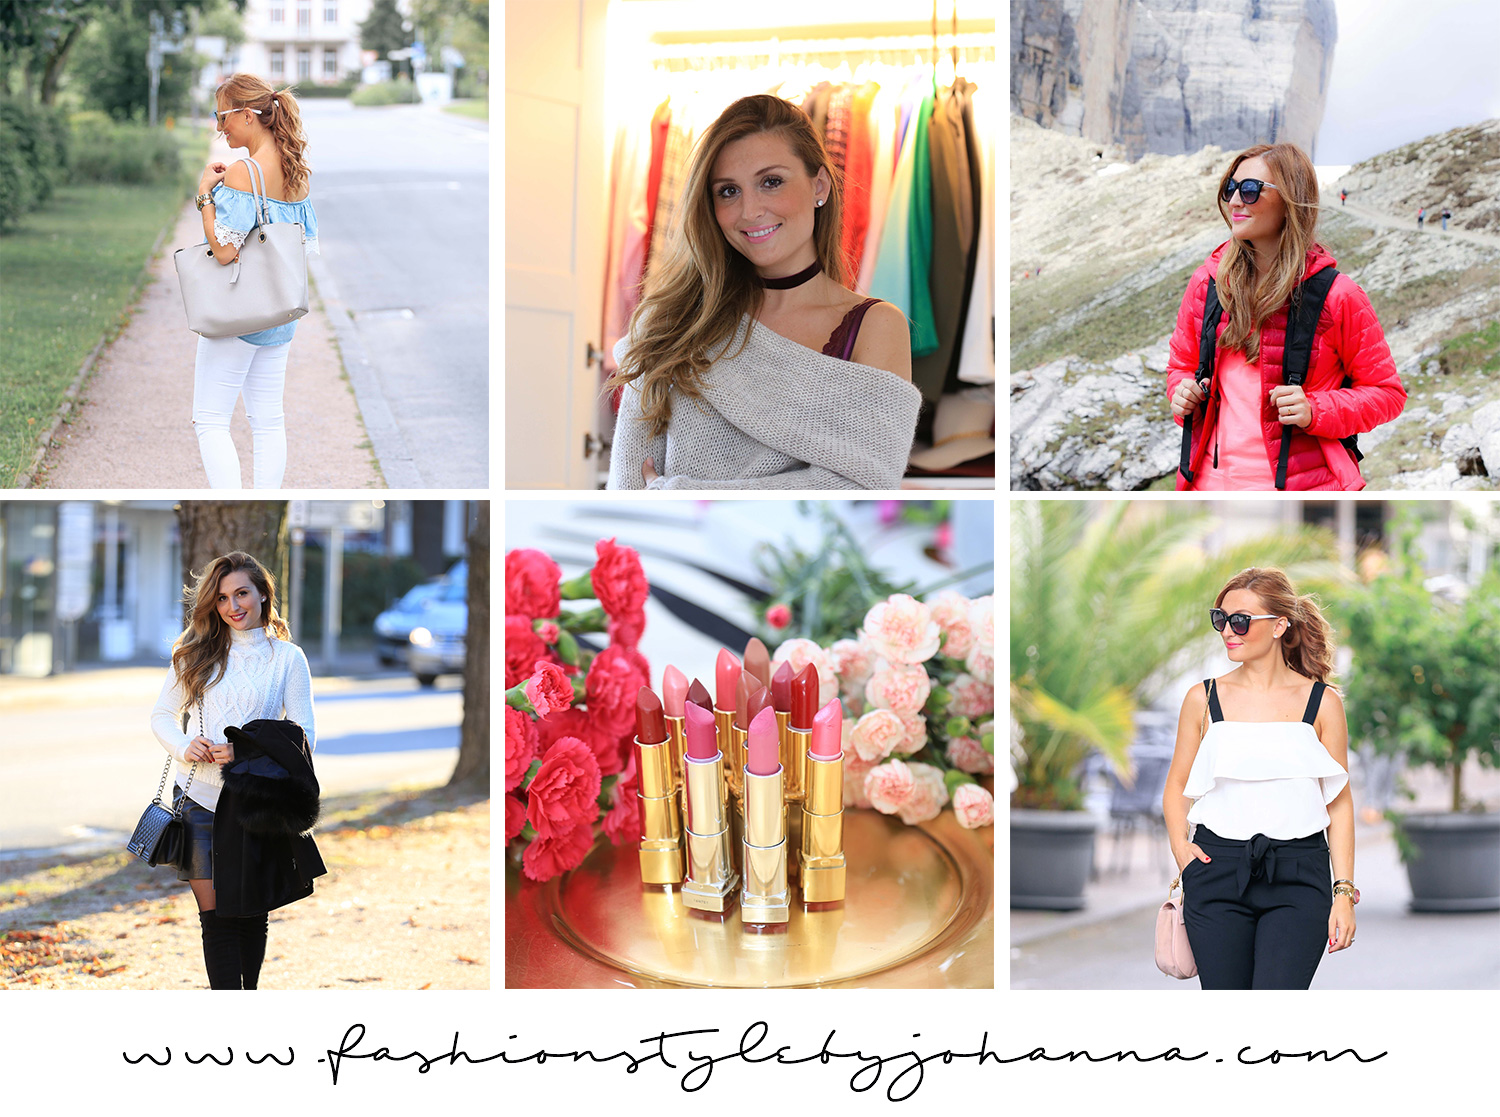 September Favoriten 2017, Monatsrückblick, Blog des Monats, fashionstylebyjohanna